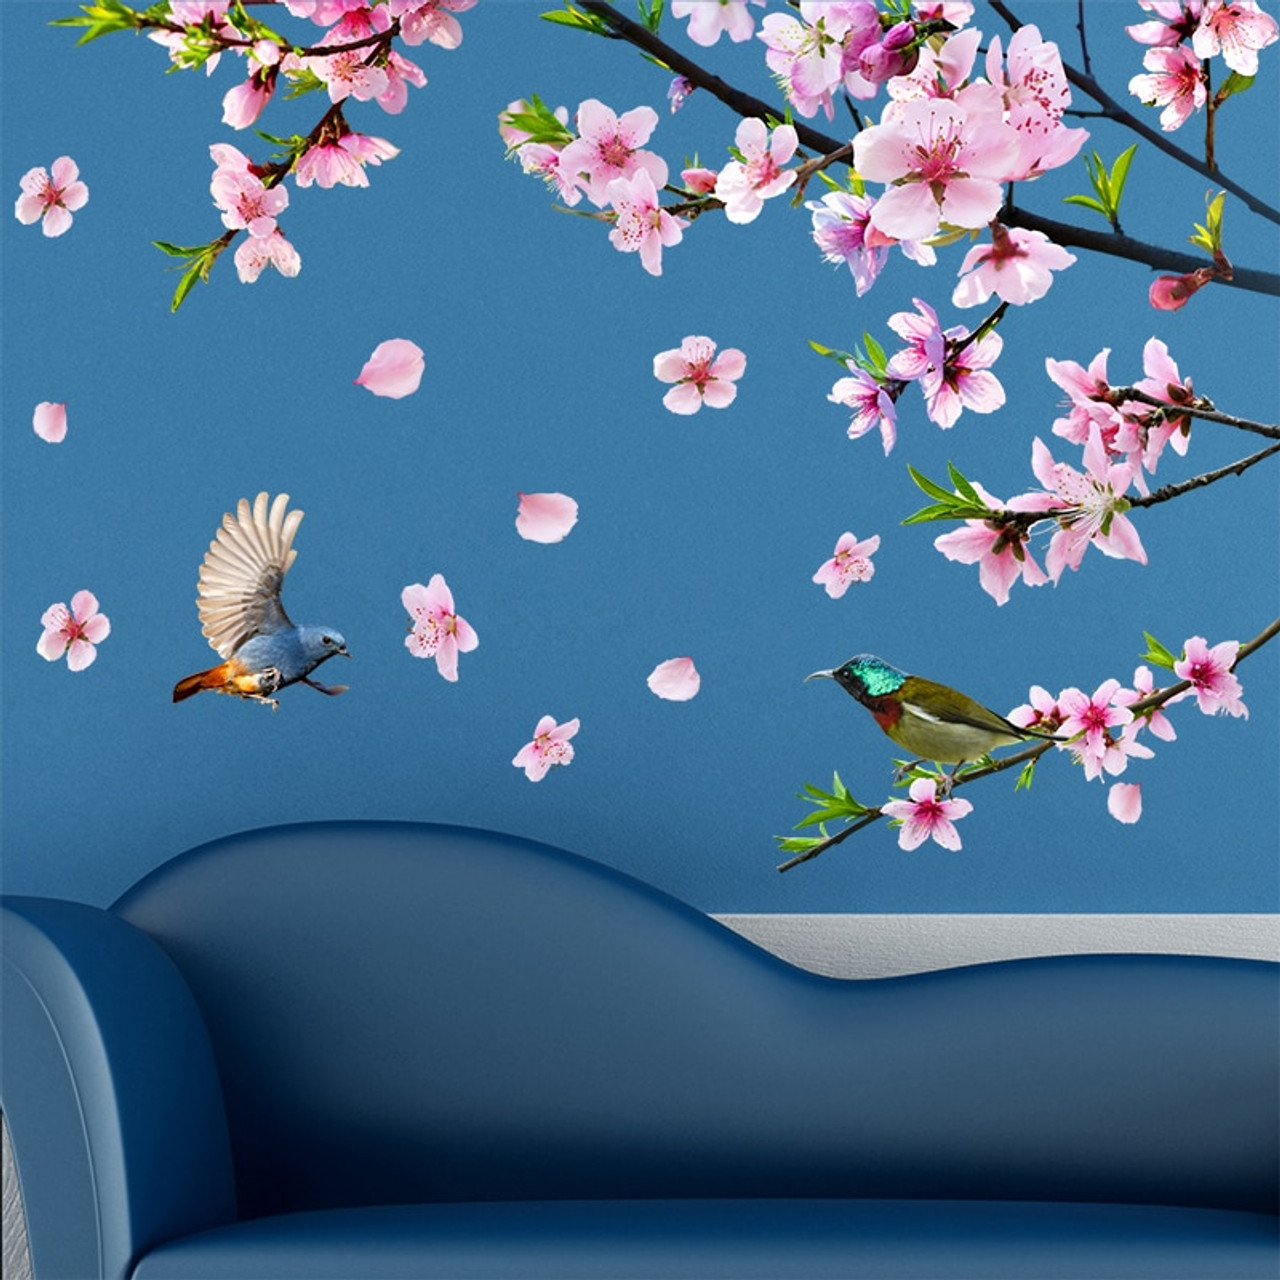 f67f201ba5 ... [SHIJUEHEZI] Peach Blossom Tree Branch Wall Stickers DIY Flowers Birds Wall  Decals for House ...